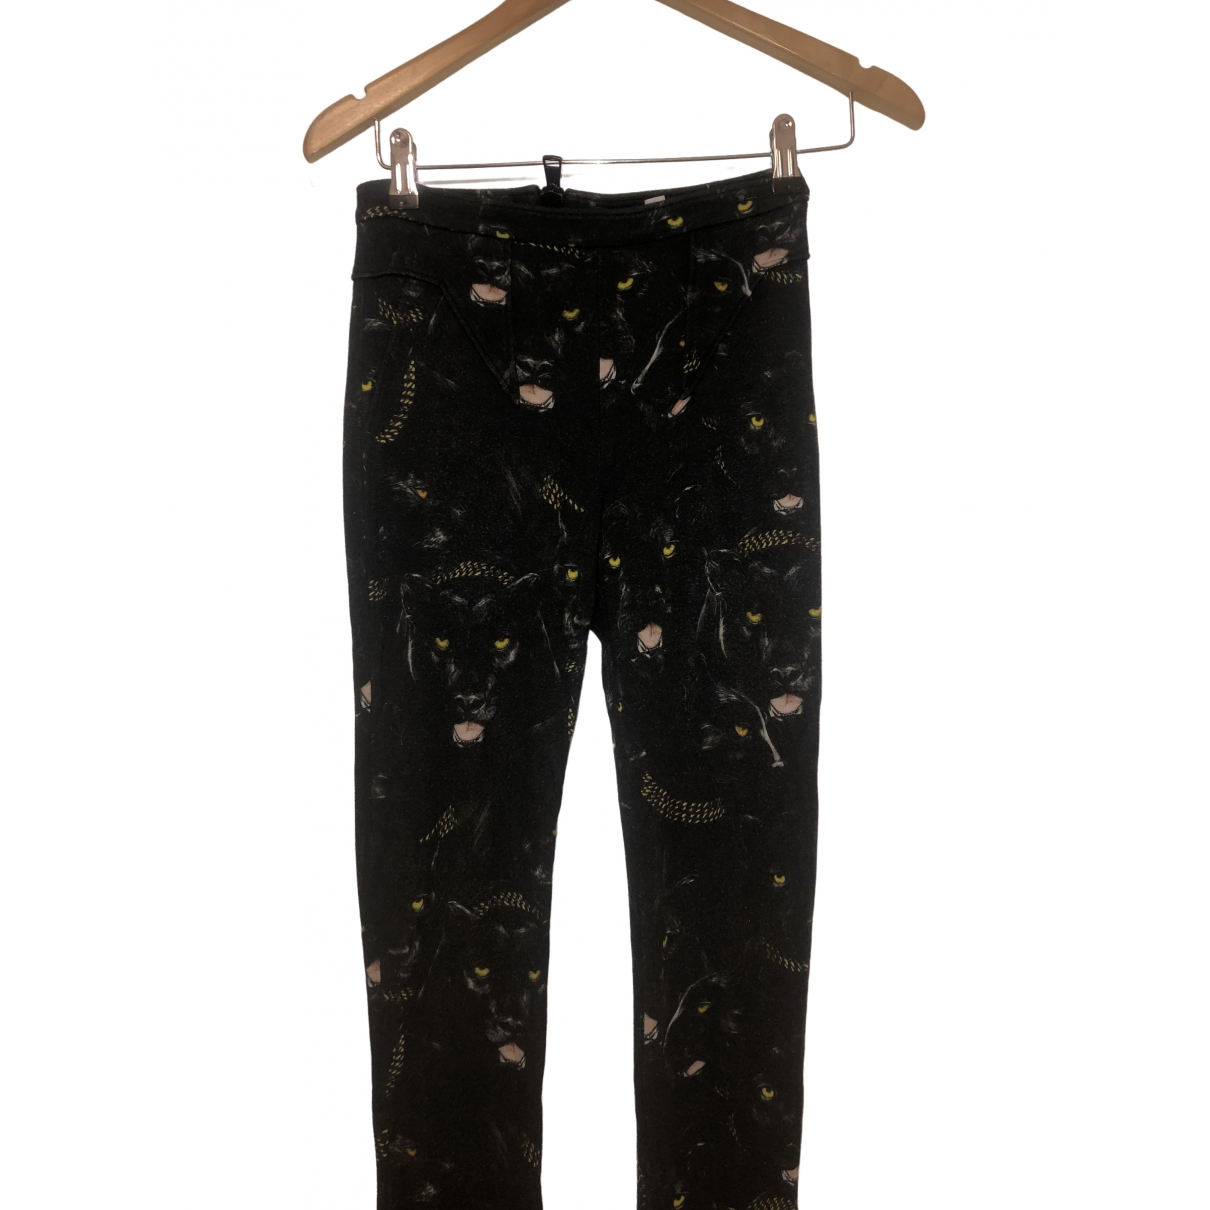 Givenchy \N Grey Trousers for Women XS International